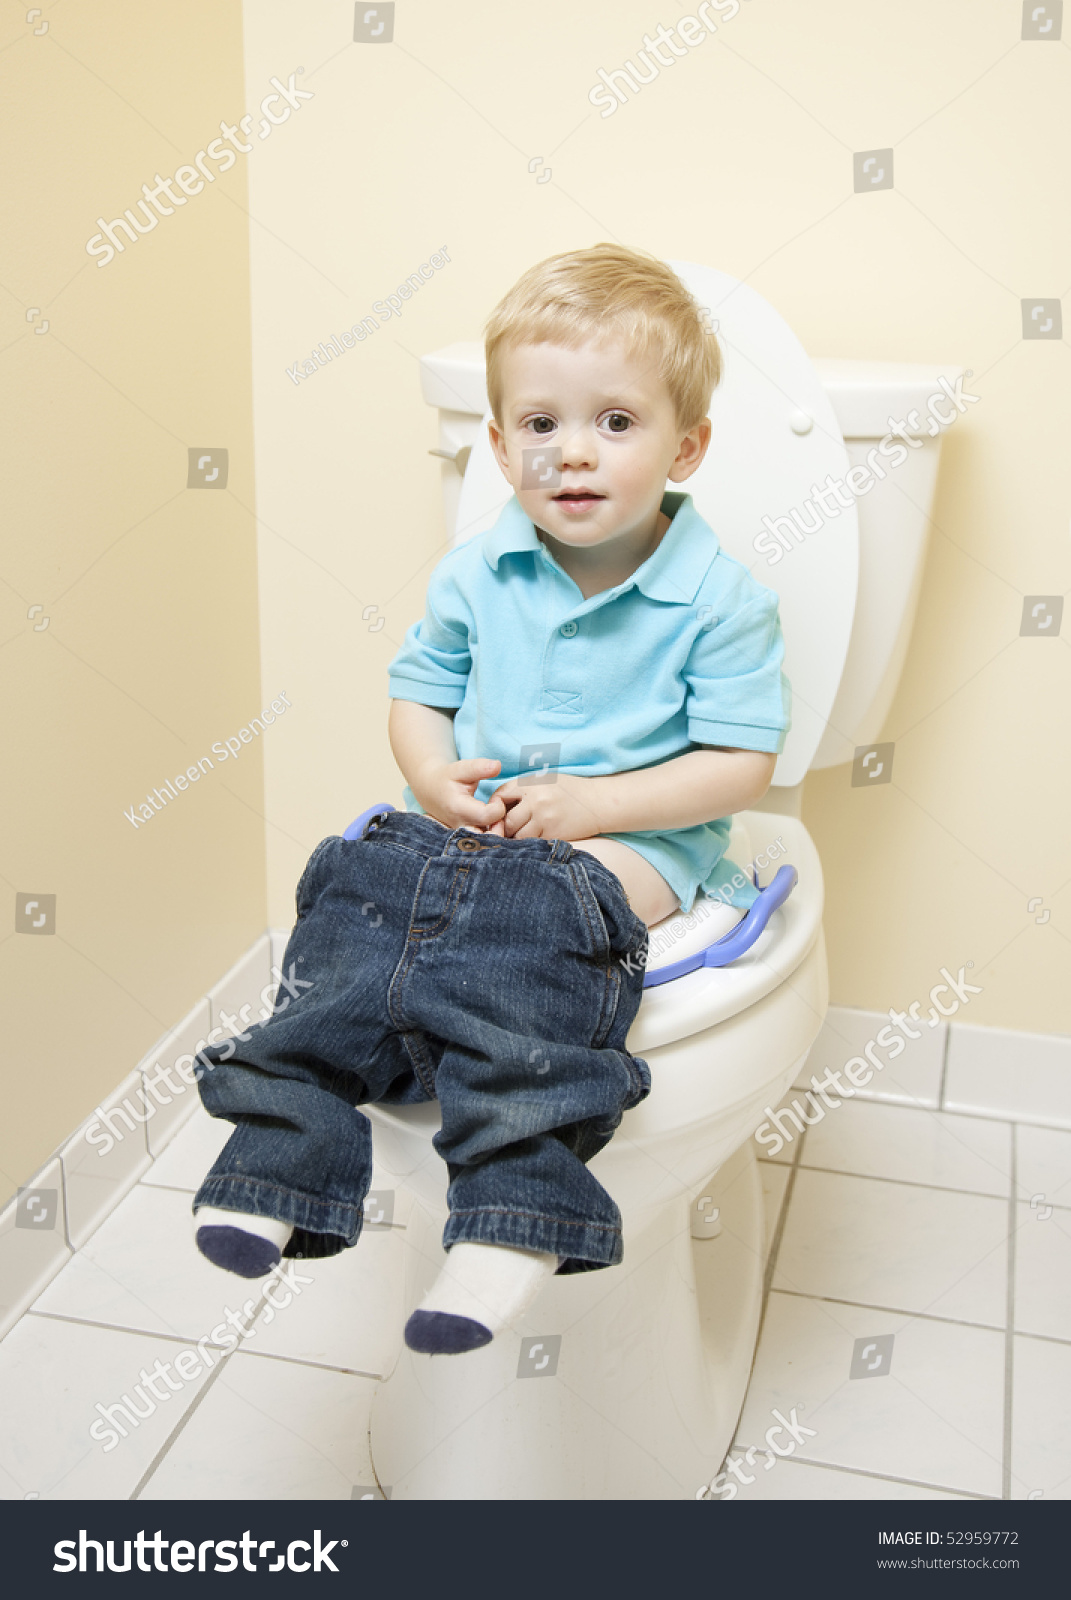 young boy and the toilets Young Boy Sitting on Toilet Seat Preview. Save to a lightbox